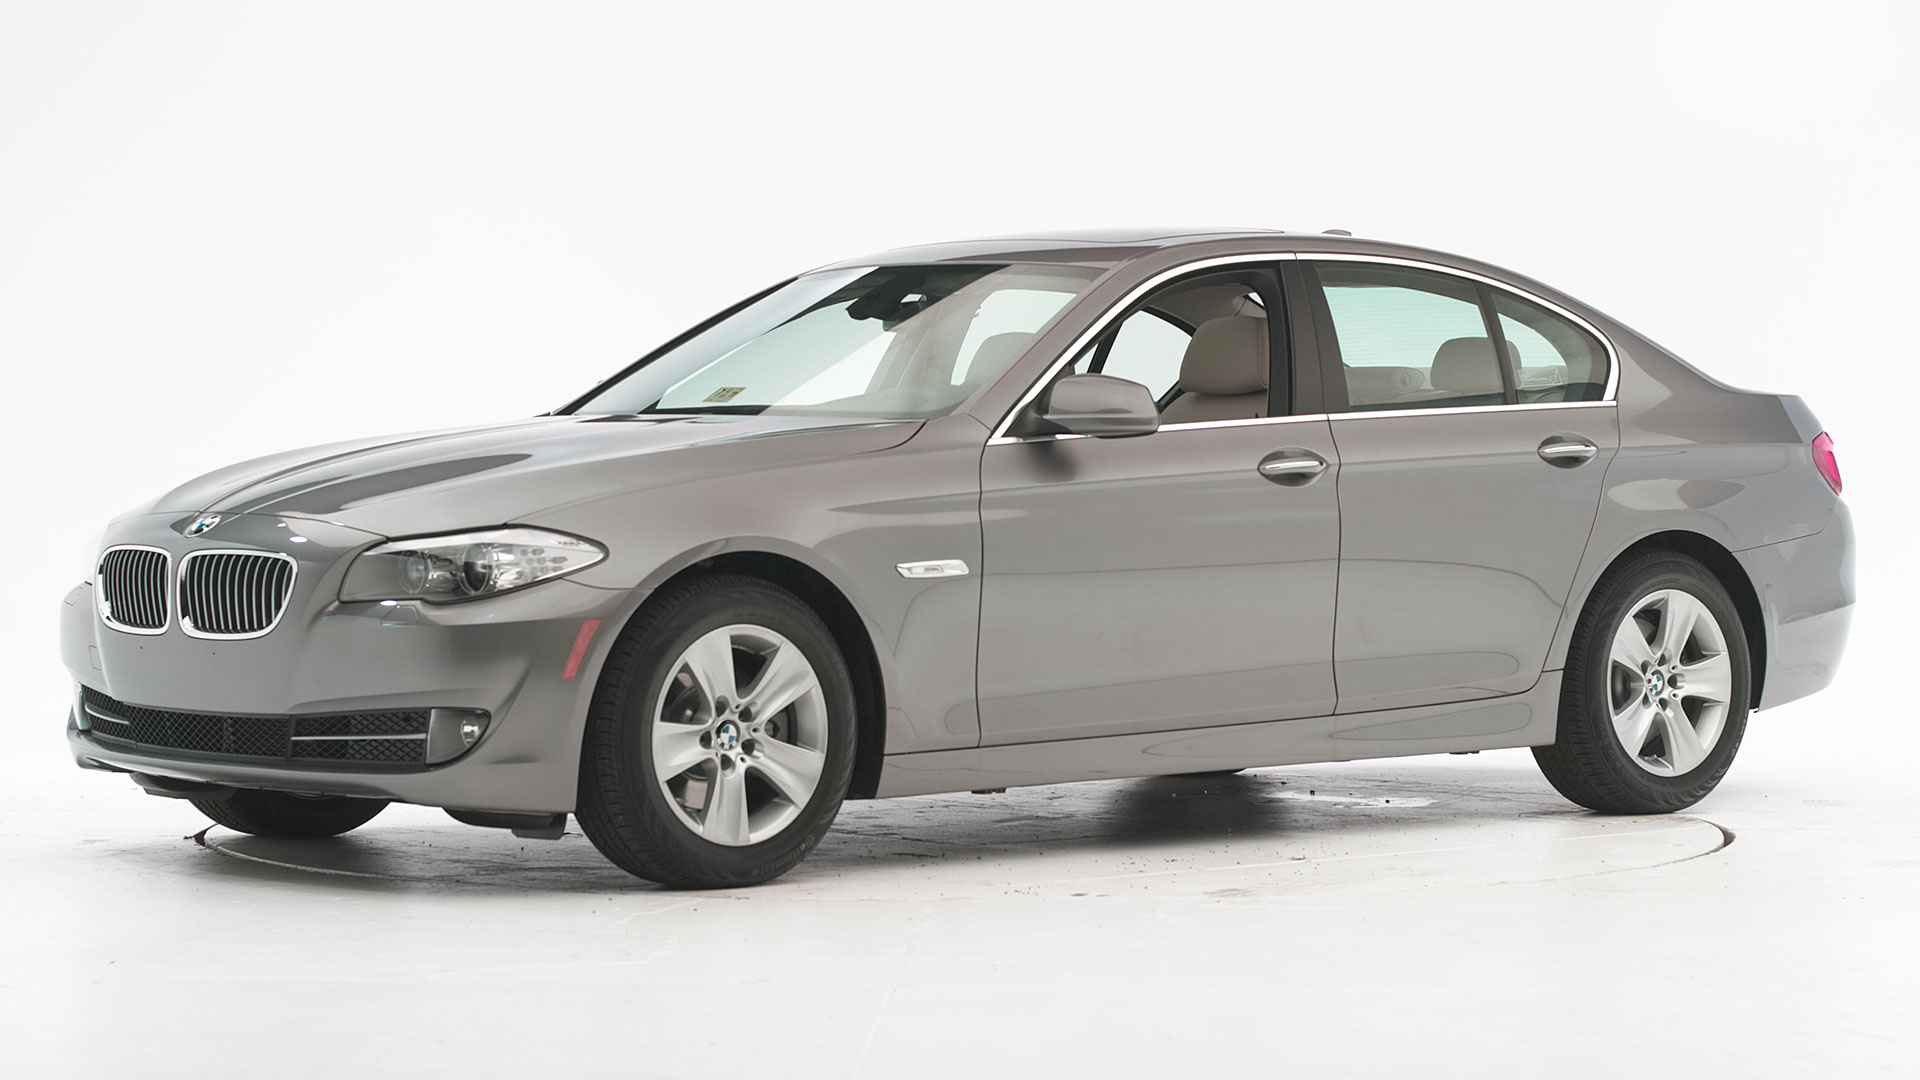 2011 BMW 5 series 4-door sedan